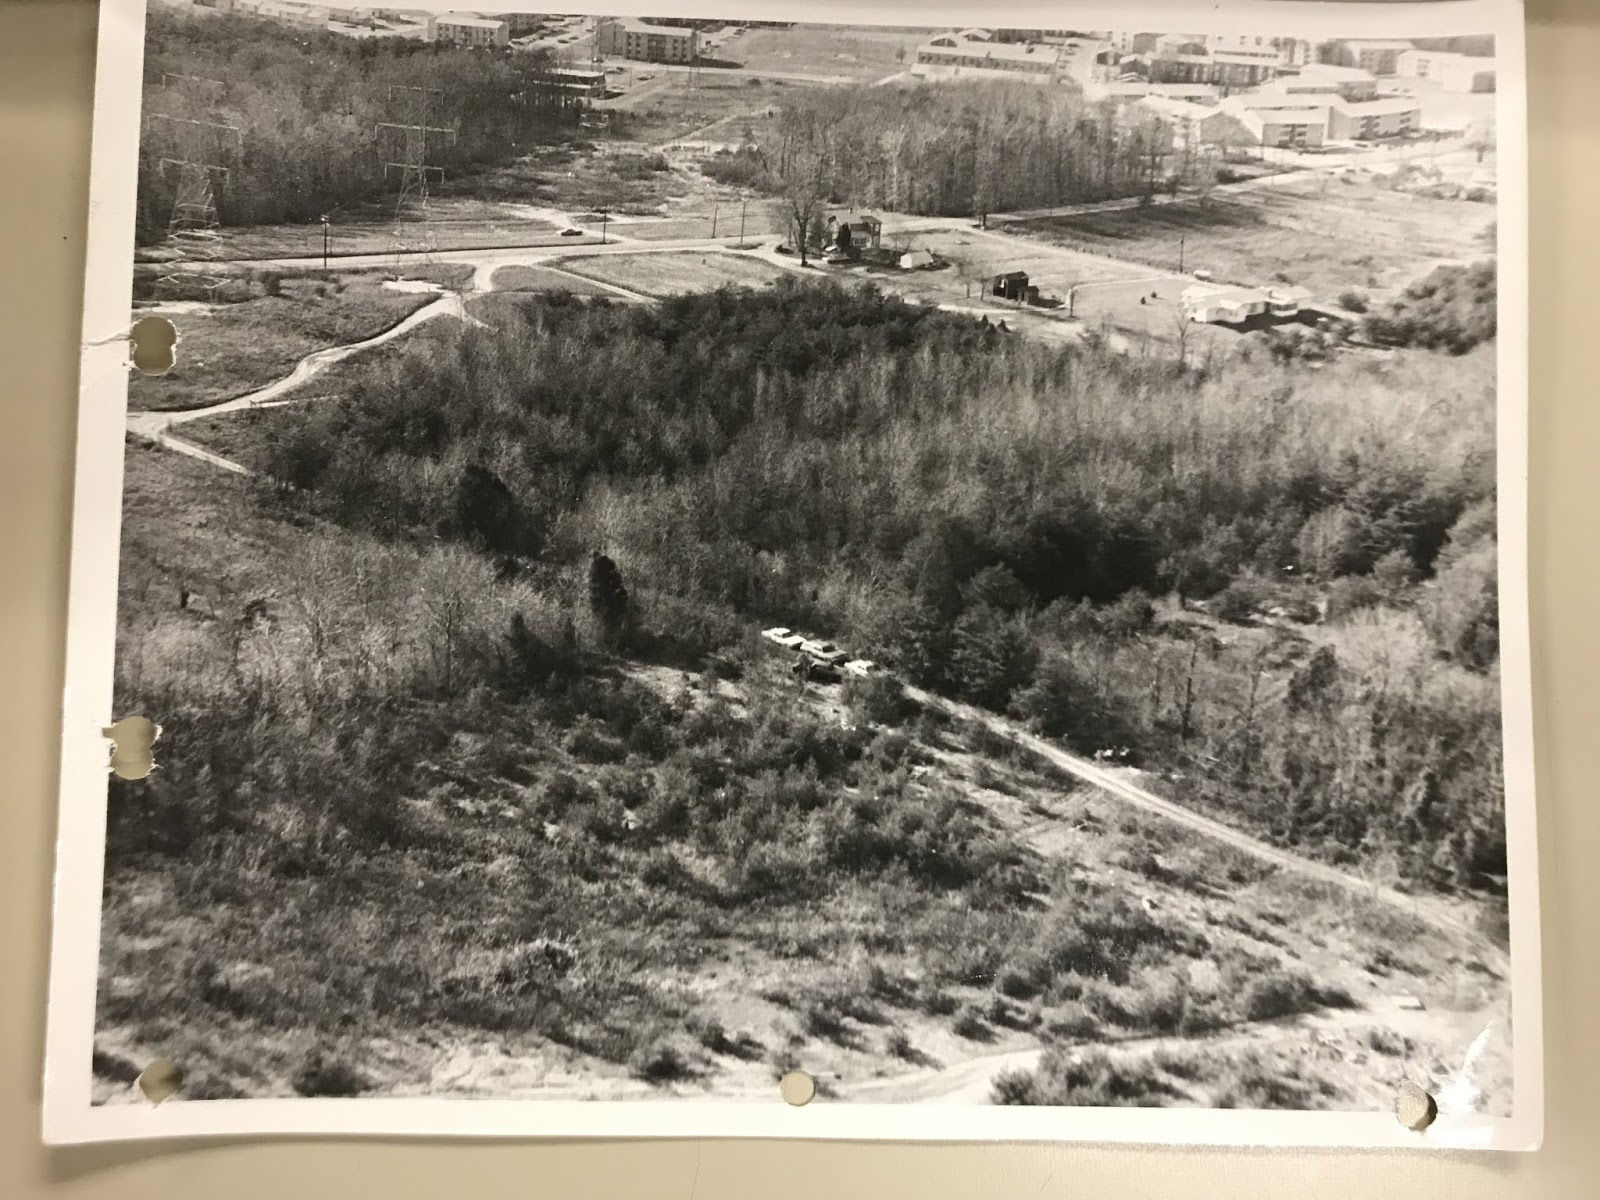 A 1972 aerial police photo of the area where the unidentified woman was killed. (Courtesy Prince George's County Police Department)